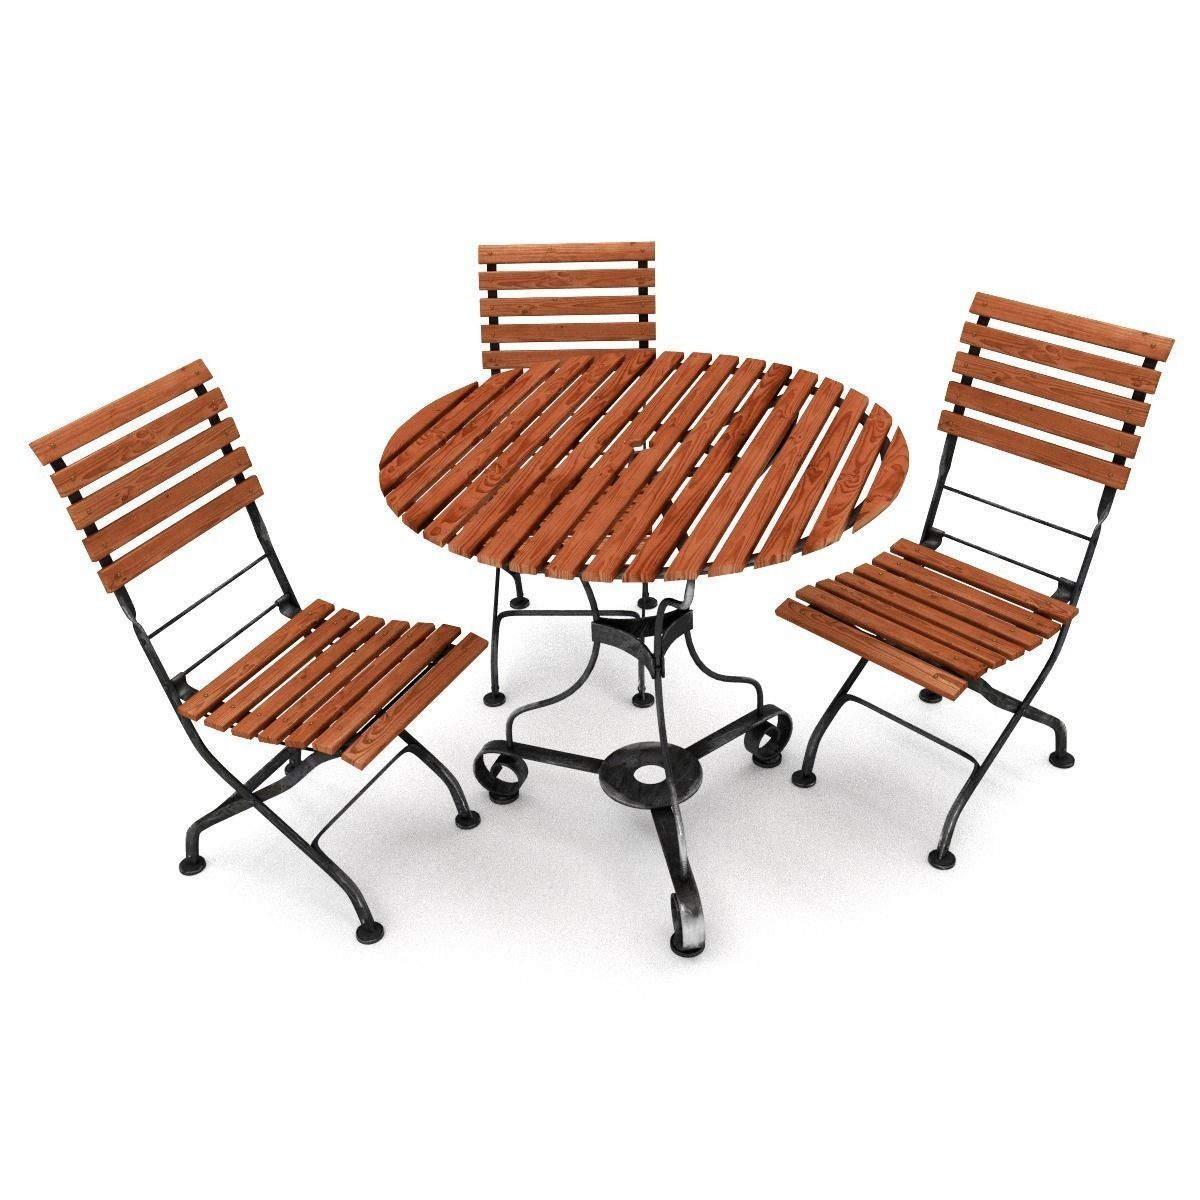 garden furniture set 3d model obj fbx blend 1